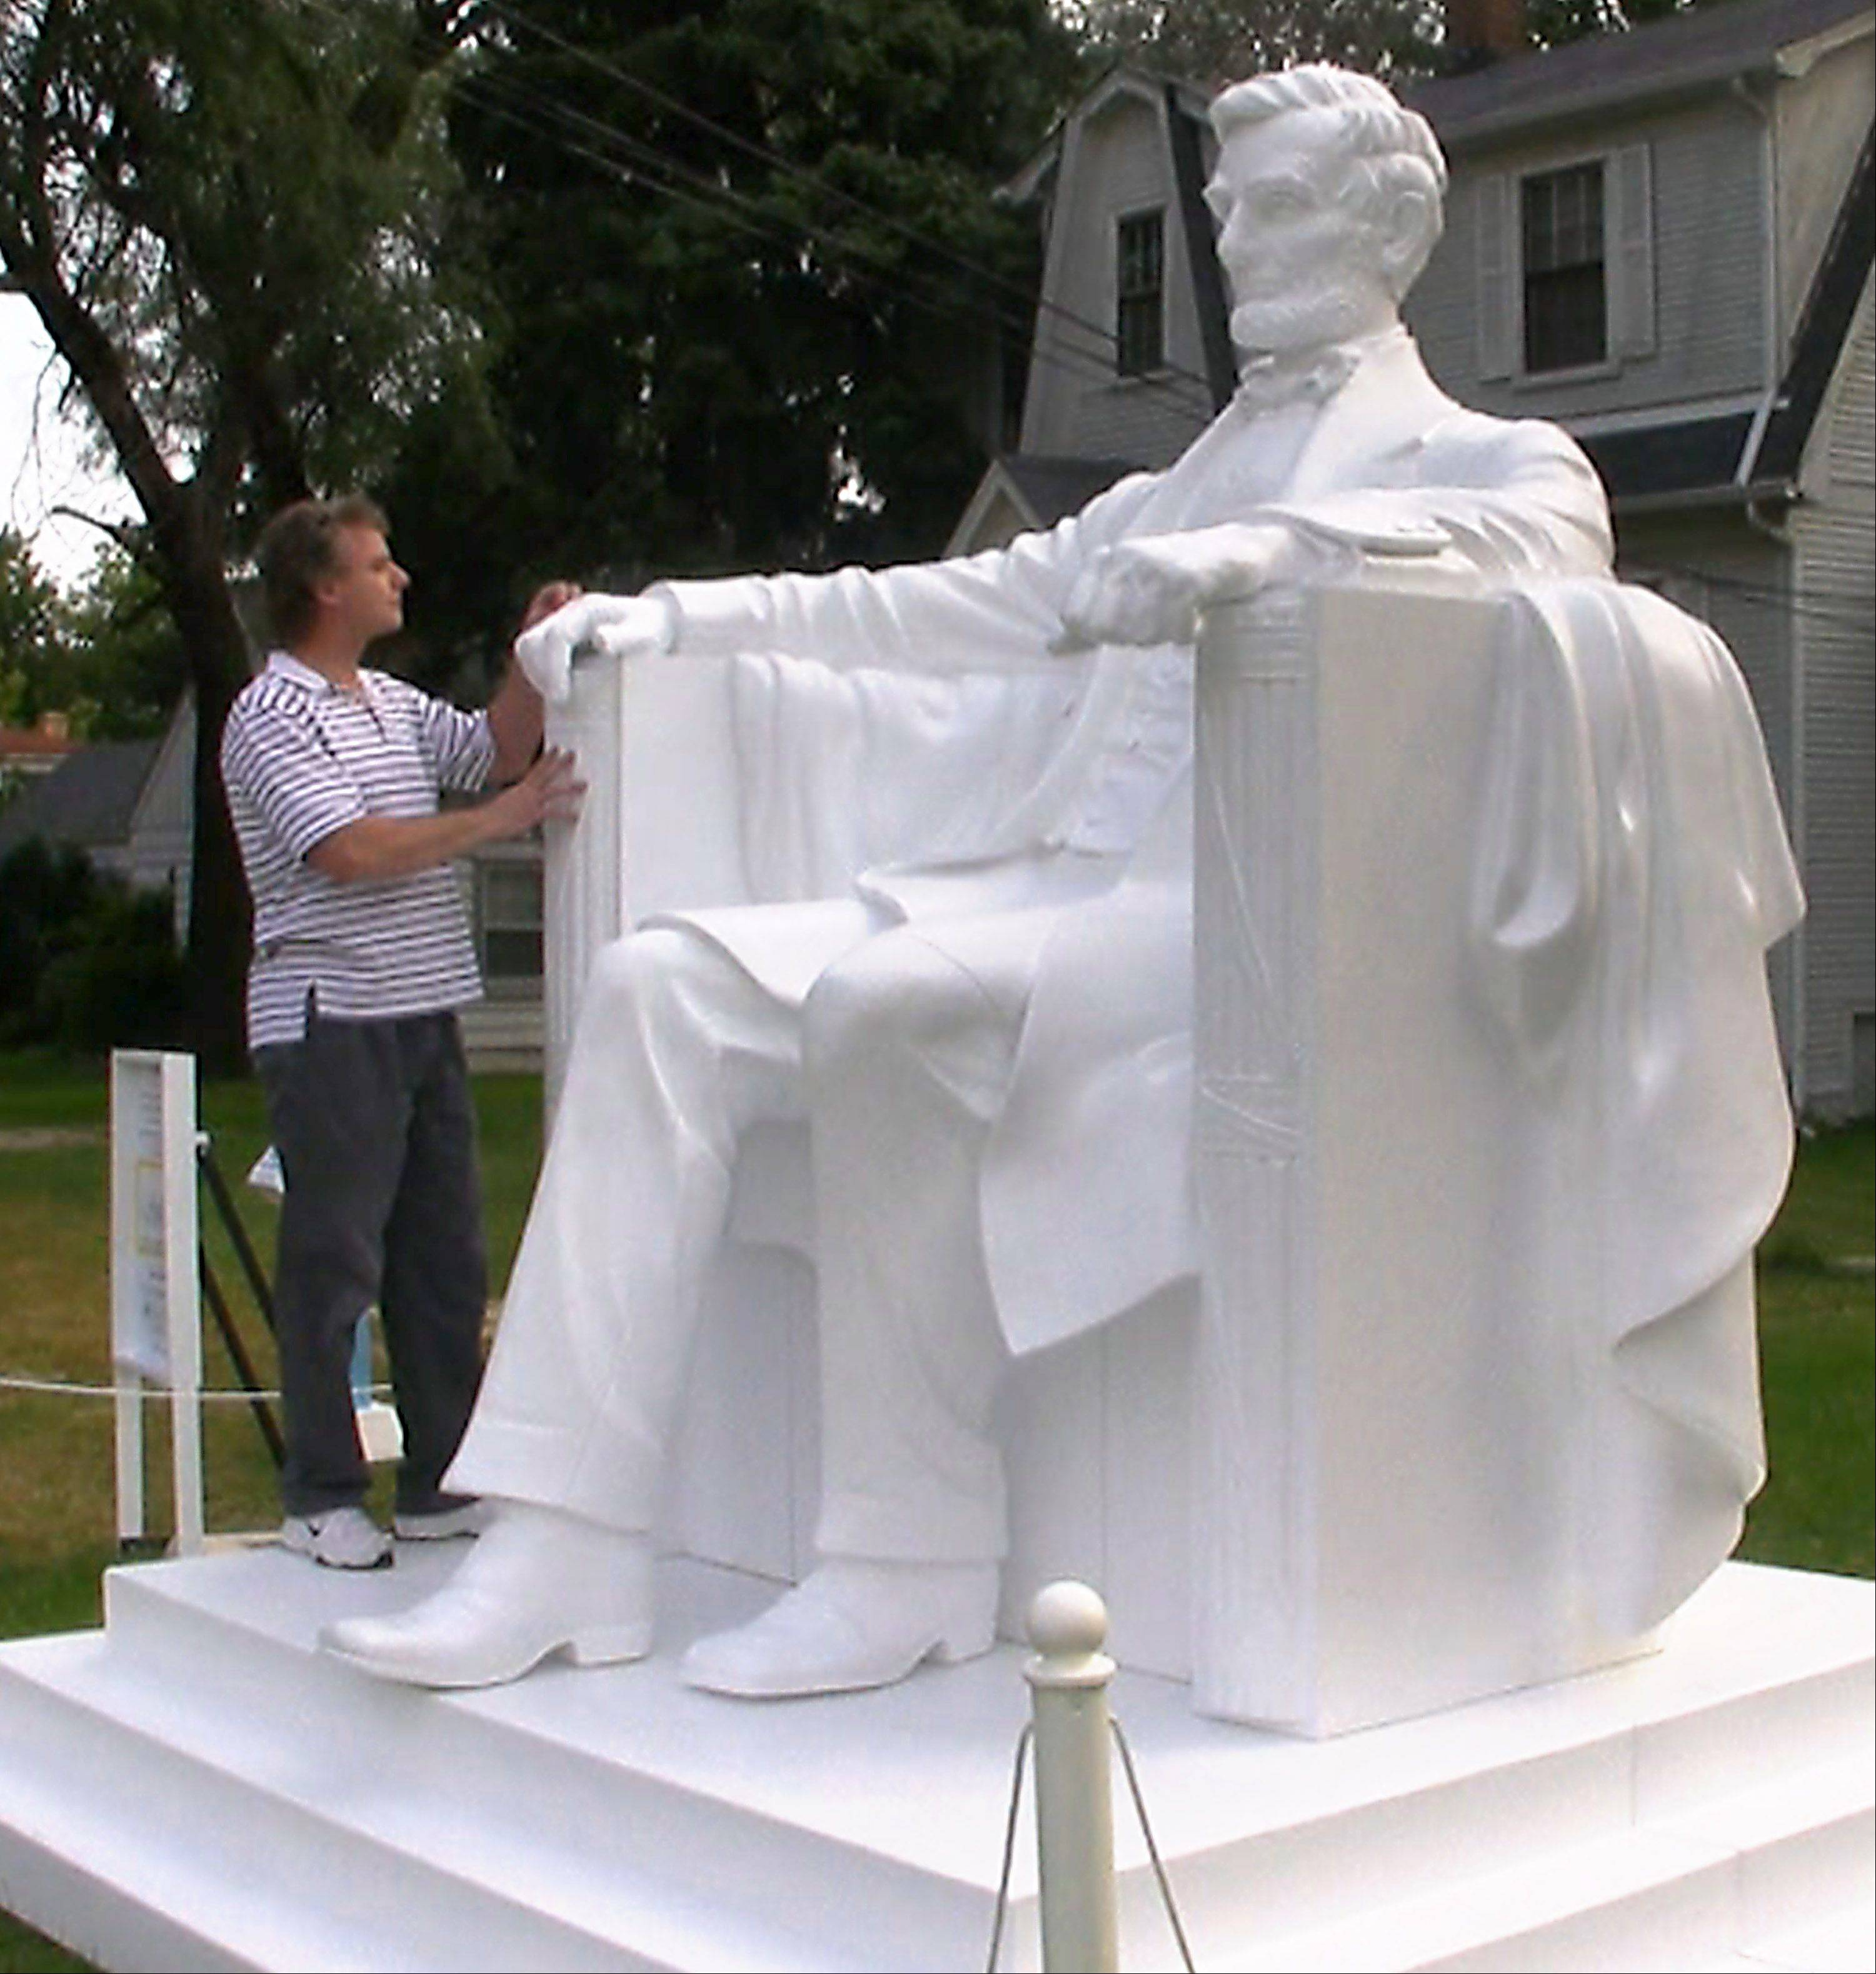 In 2007, Arlington Heights sculptor Fran Volz crafted a 10-foot-tall Abraham Lincoln in carving foam in front of his home.